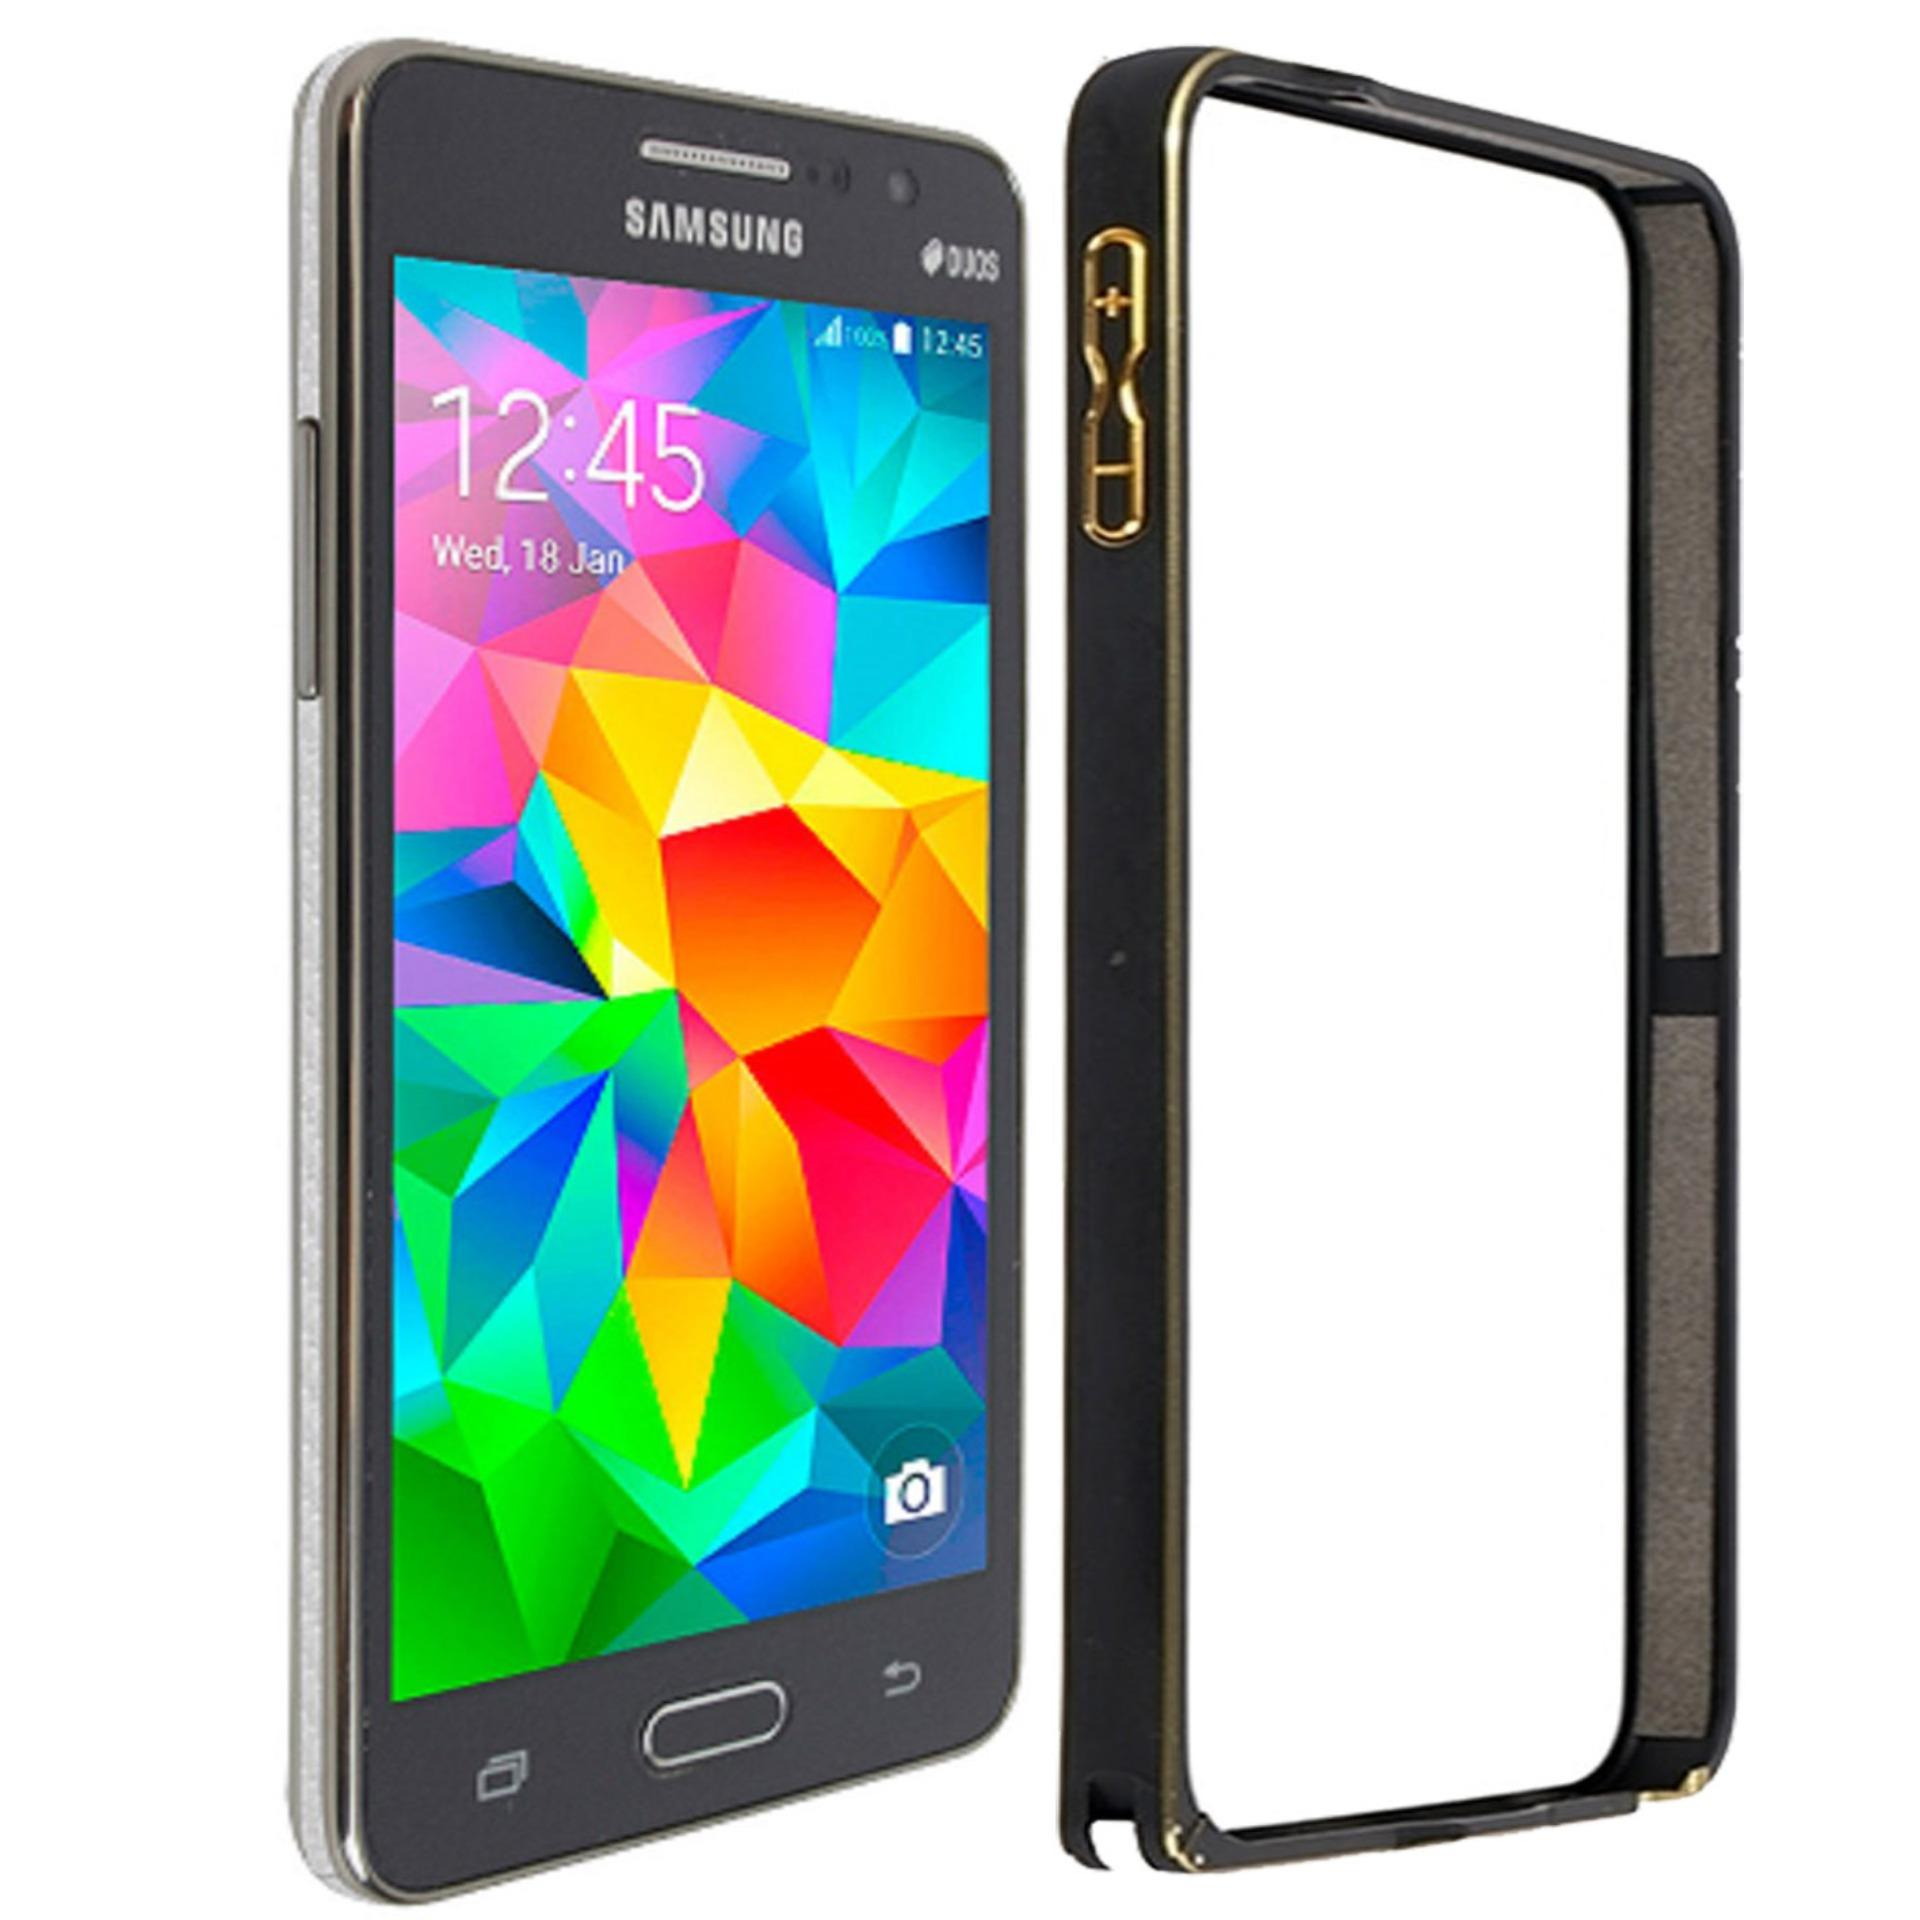 Aluminium Bumper Stainless Metal Bezel List for Samsung Galaxy Grand Prime G350 Prime Plus J